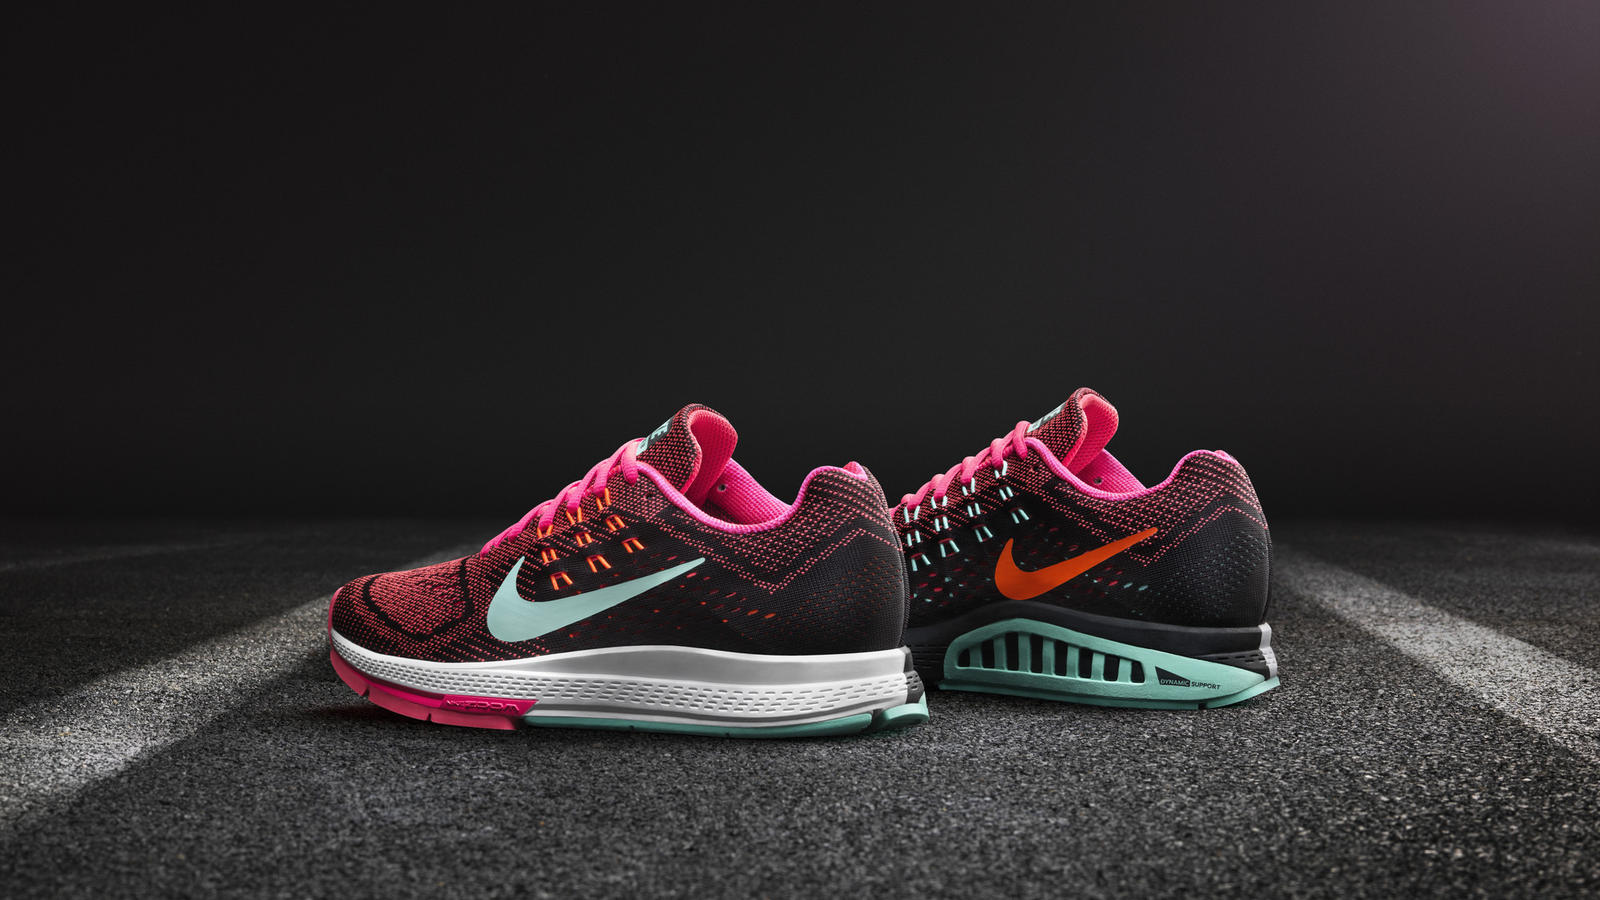 Ho14 Nike Air Zoom Structure 18 - Women's